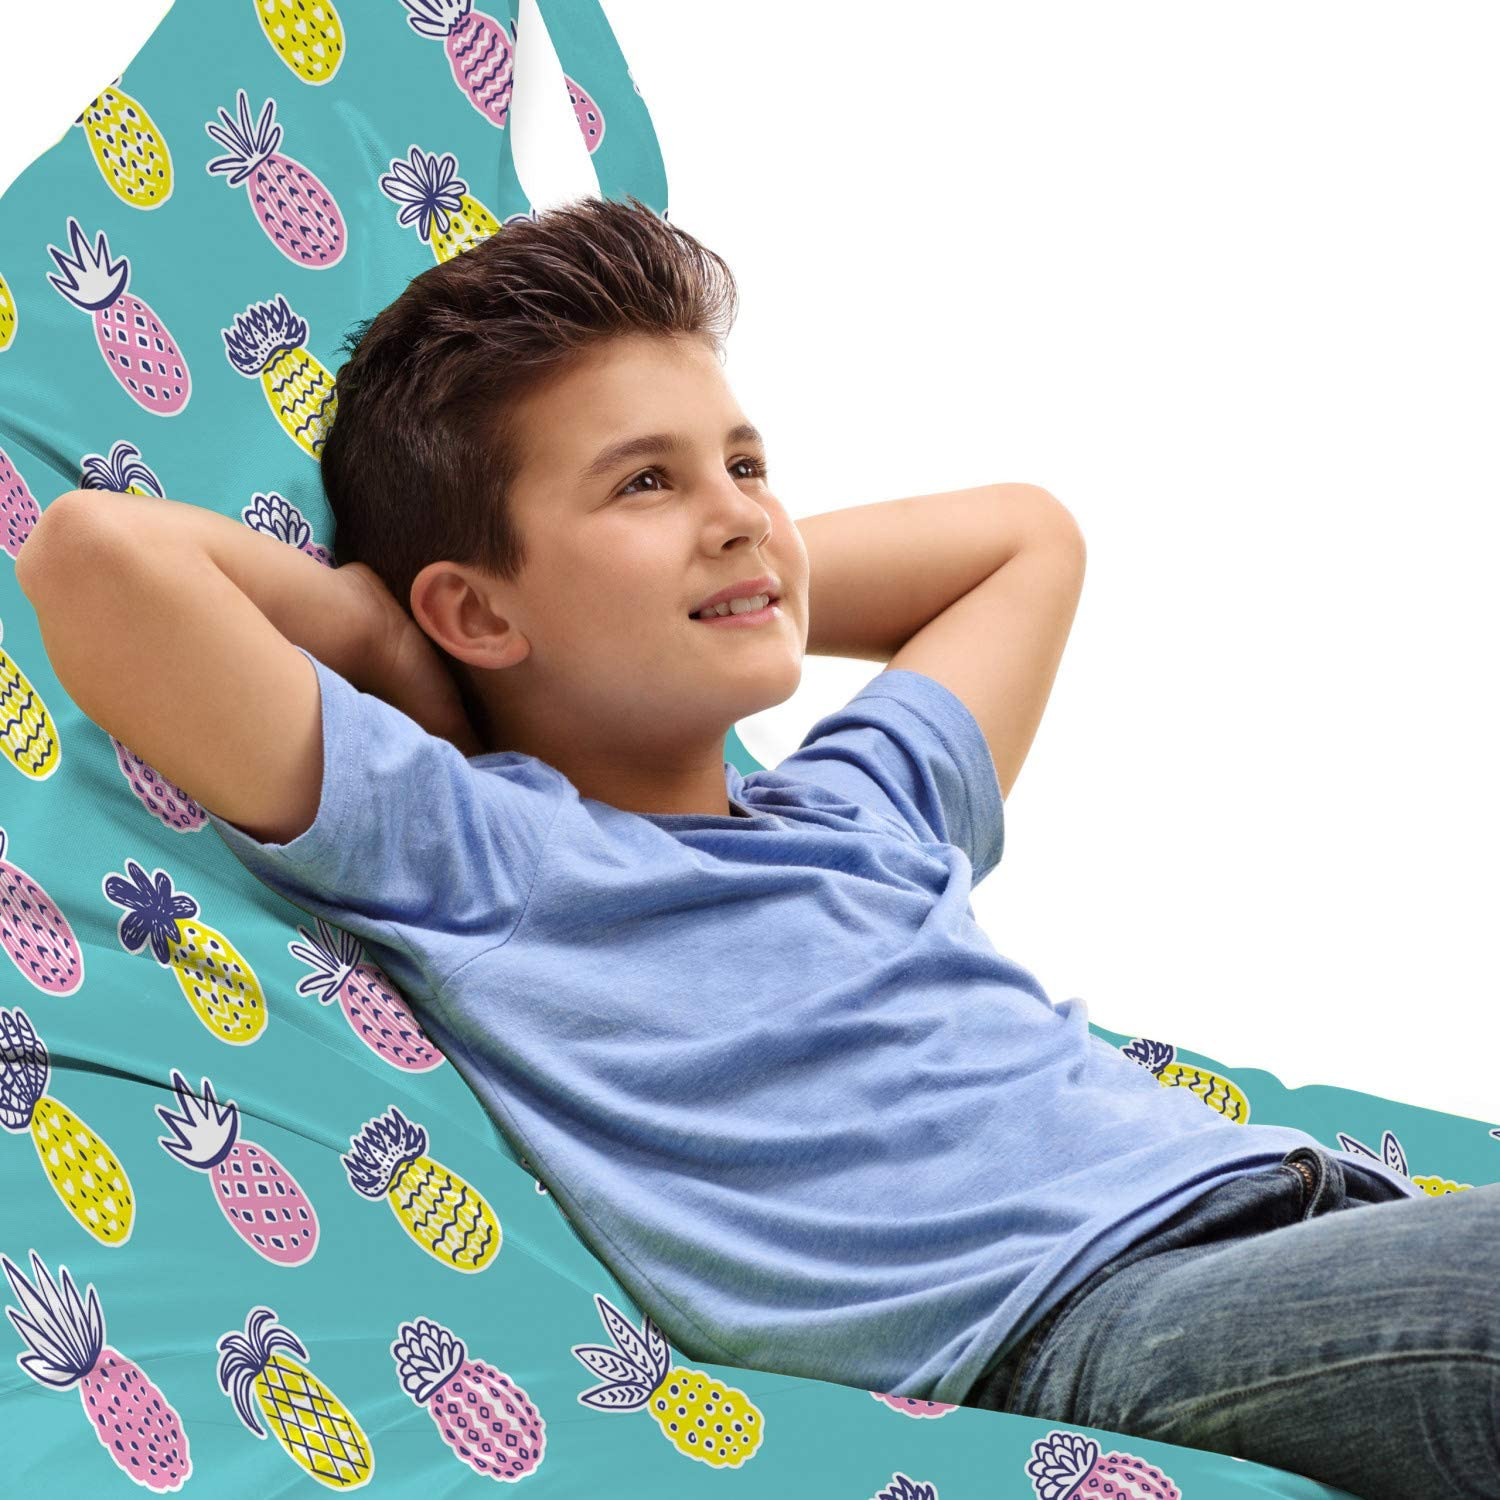 Lowest price challenge Ambesonne Fruits Ranking TOP8 Lounger Chair Bag in Tropical Pastel Pineapple